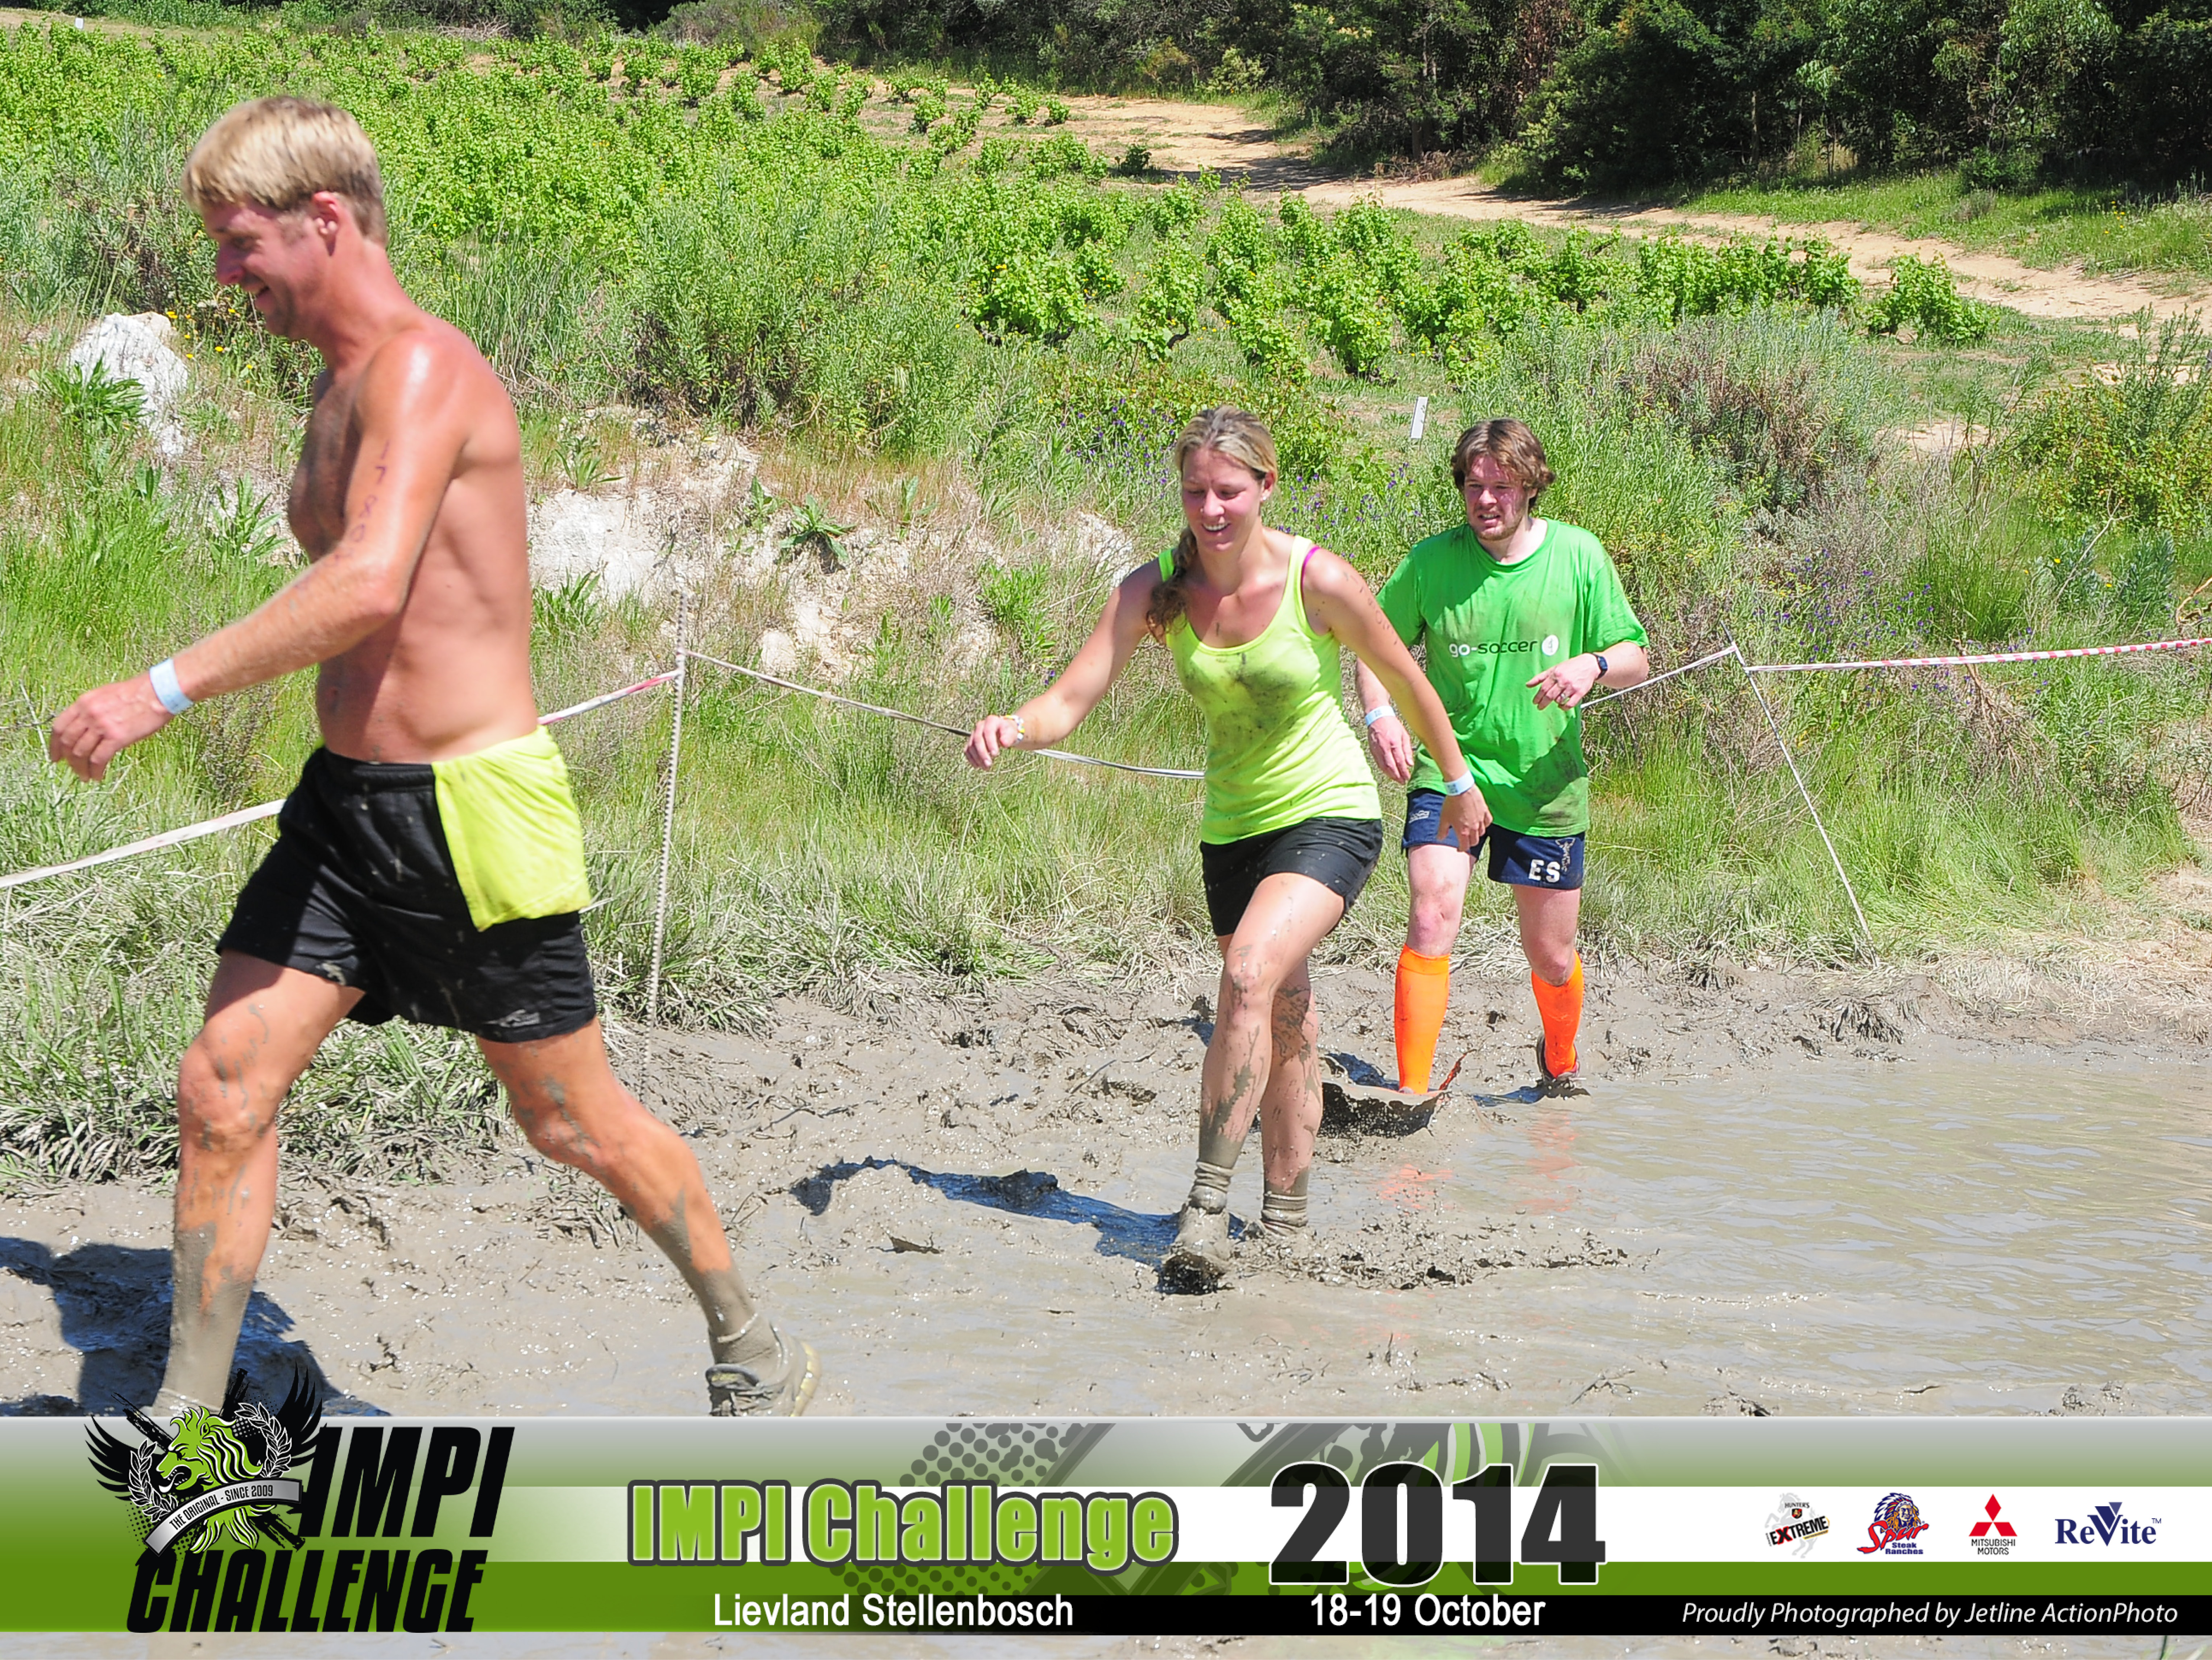 Impi Challenge Cape Town